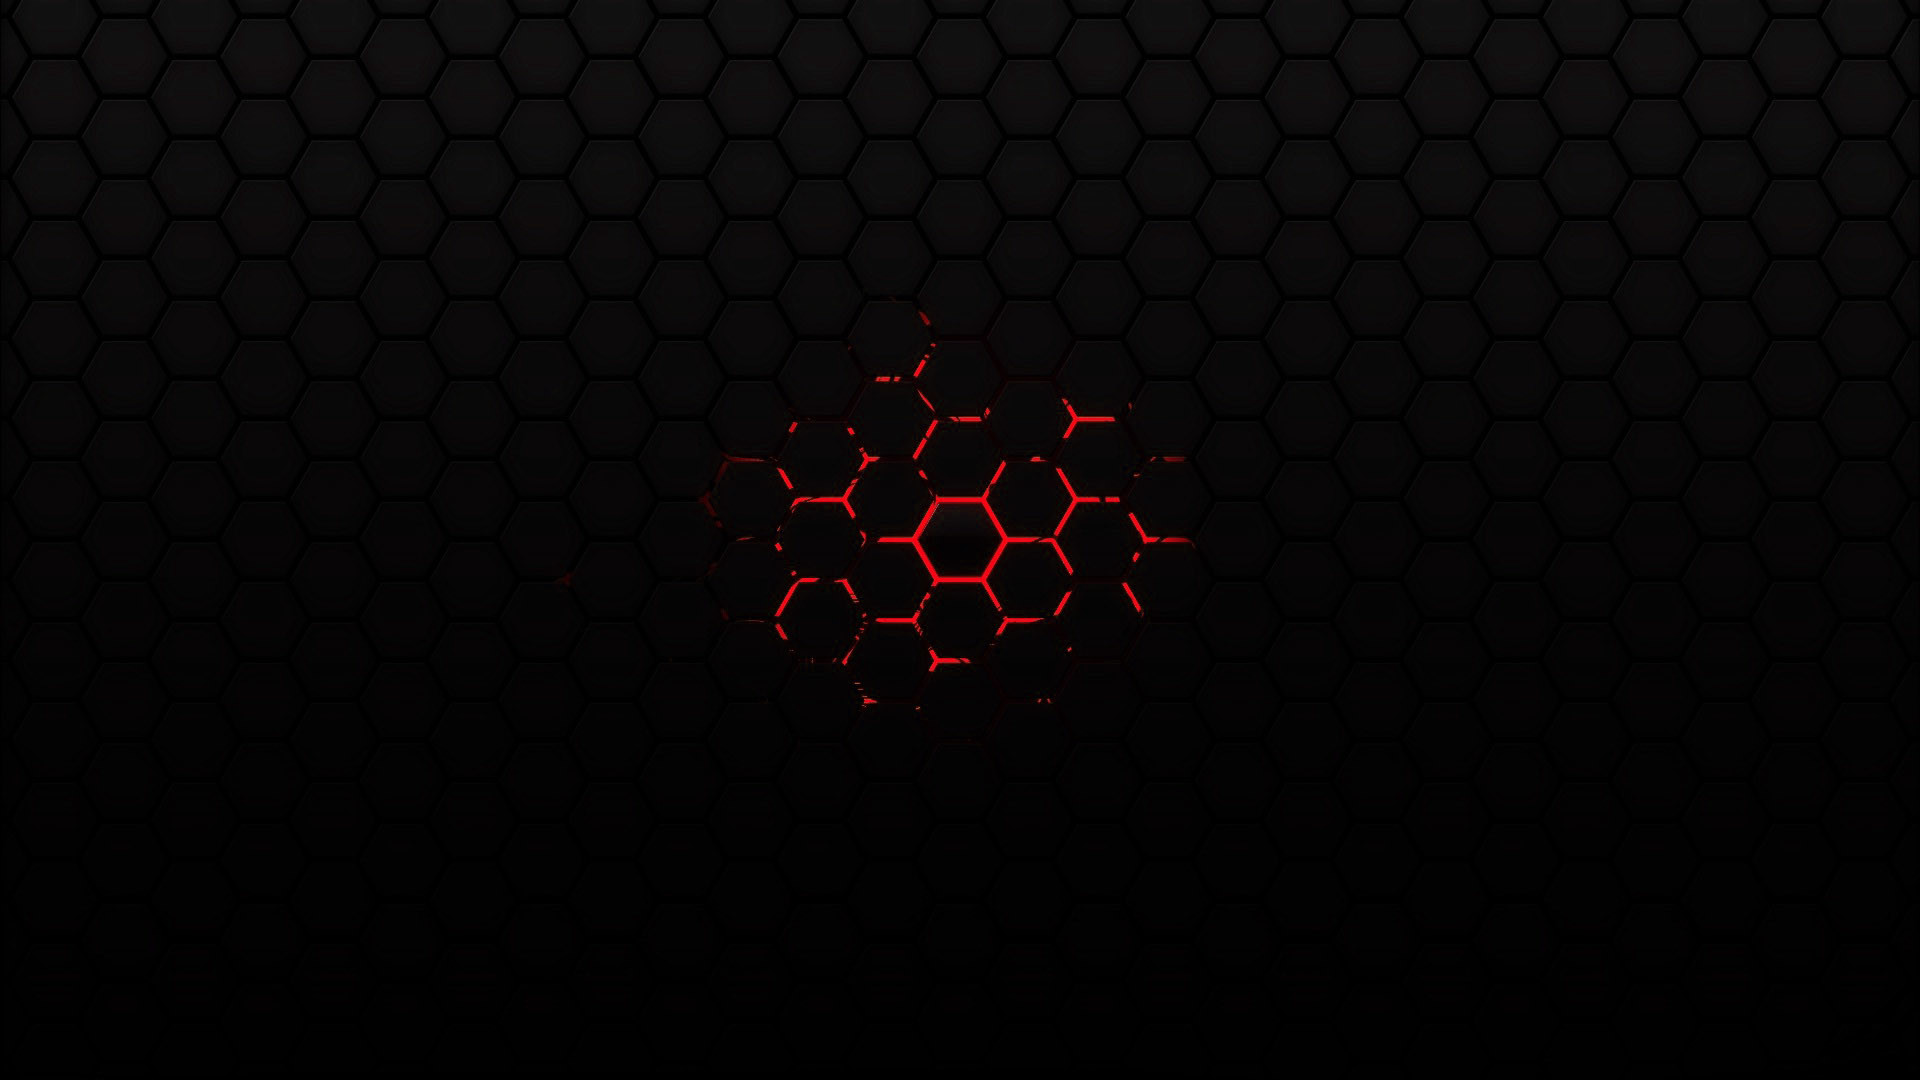 Black Red Black Background Wallpaper At 3d Wallpapers